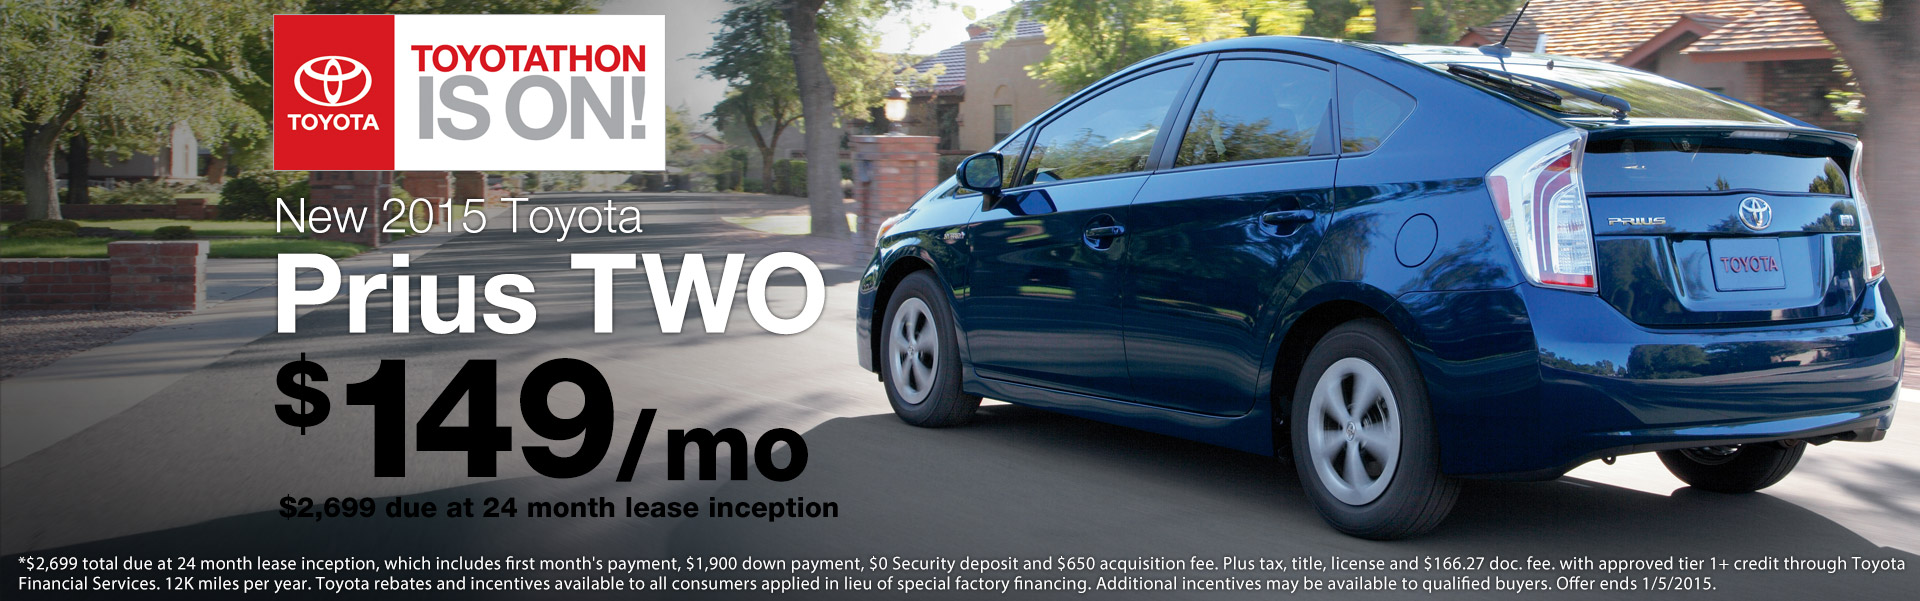 2015 Prius TWO